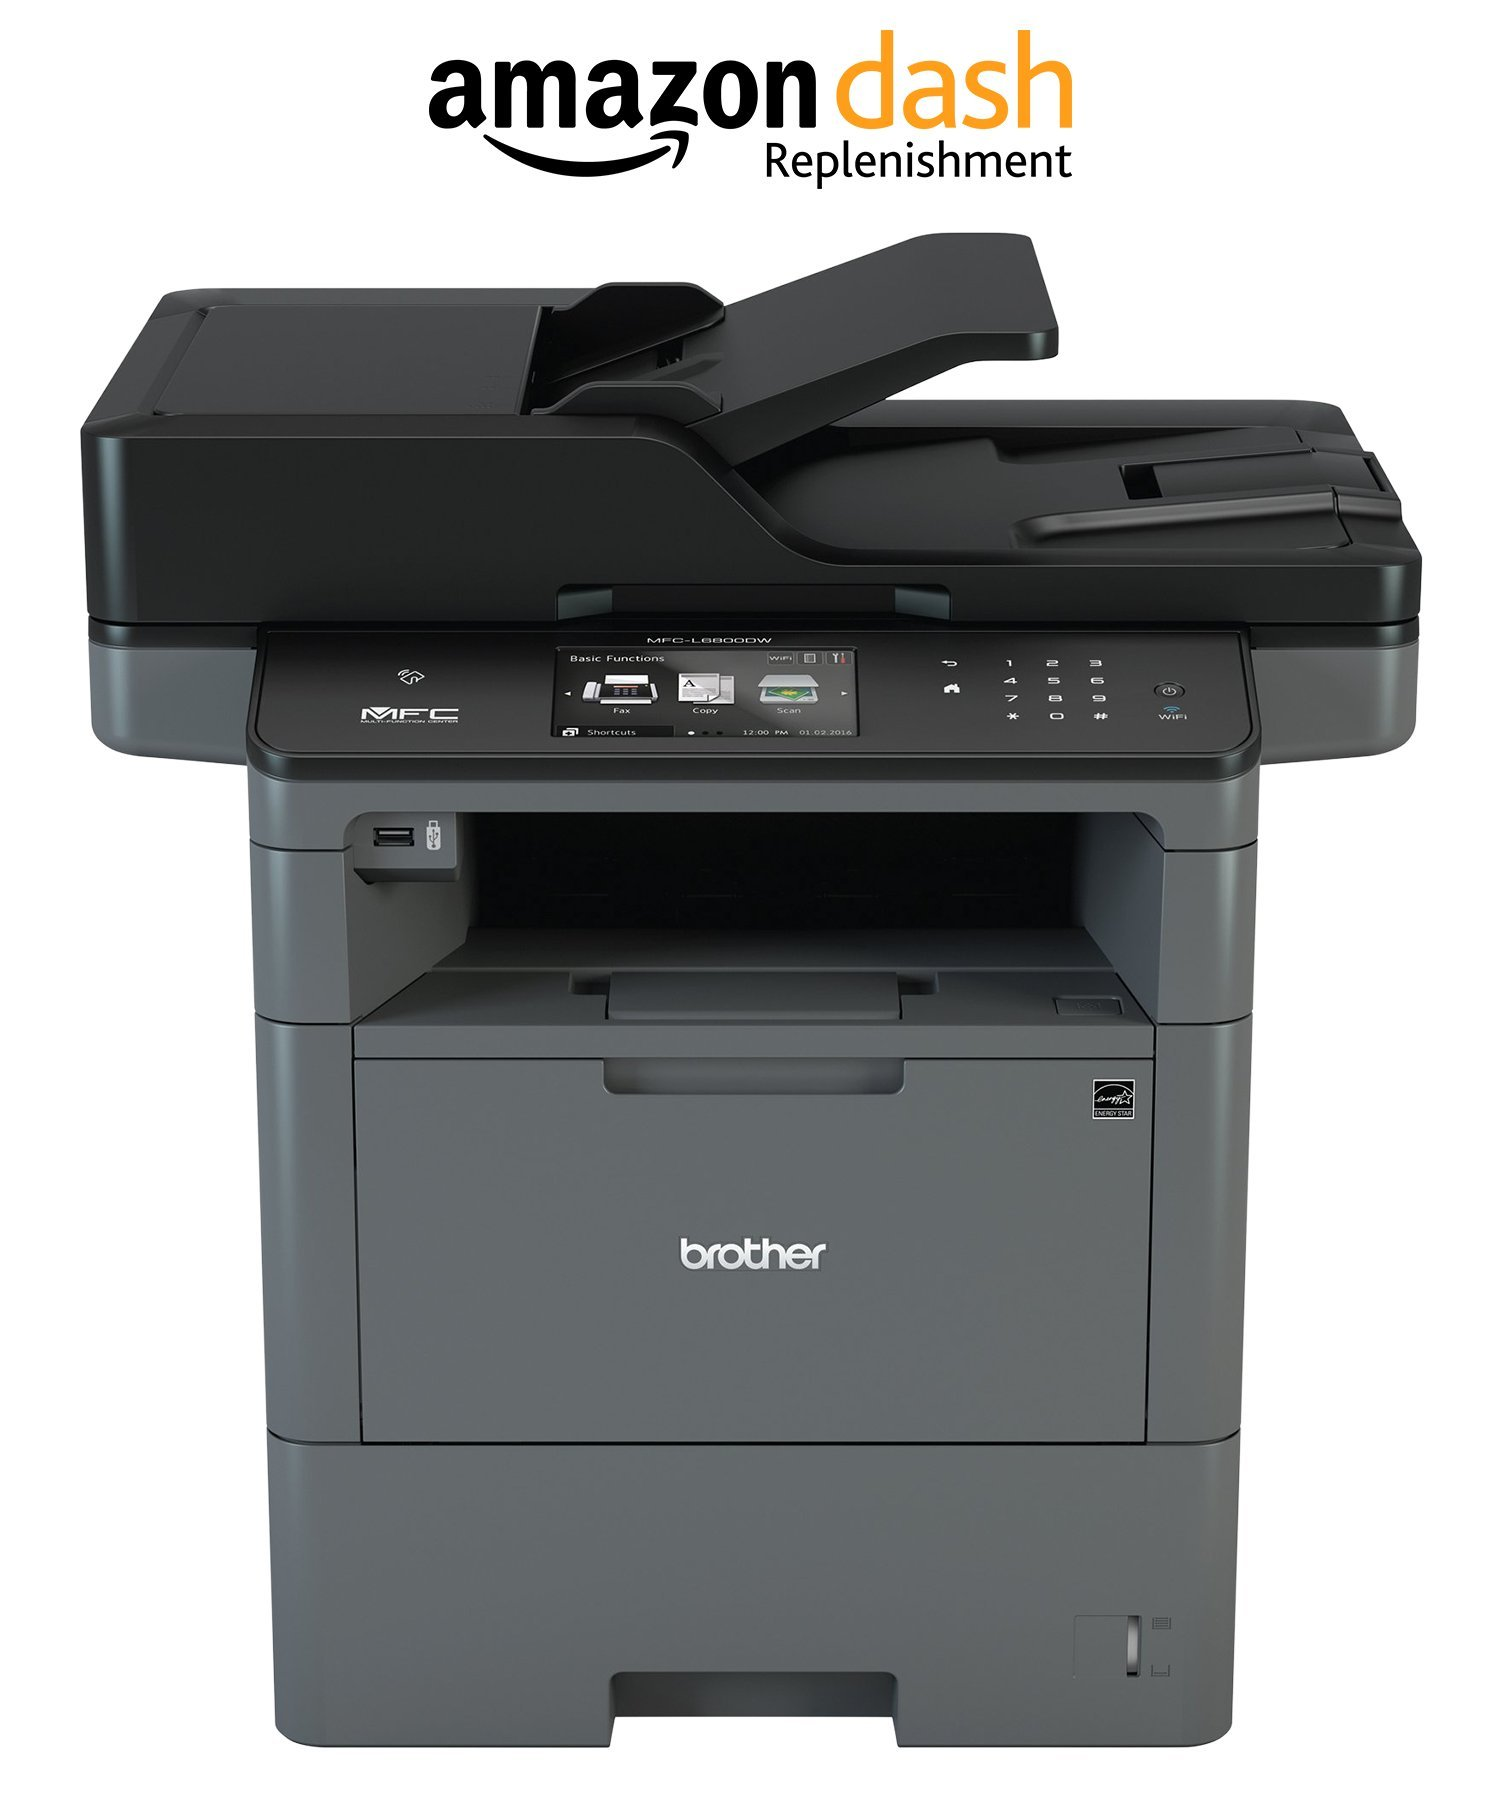 Brother MFCL6800DW Business Laser All-in-One for Mid-Size Workgroups with Higher Print Volumes, Amazon Dash Replenishment Enabled